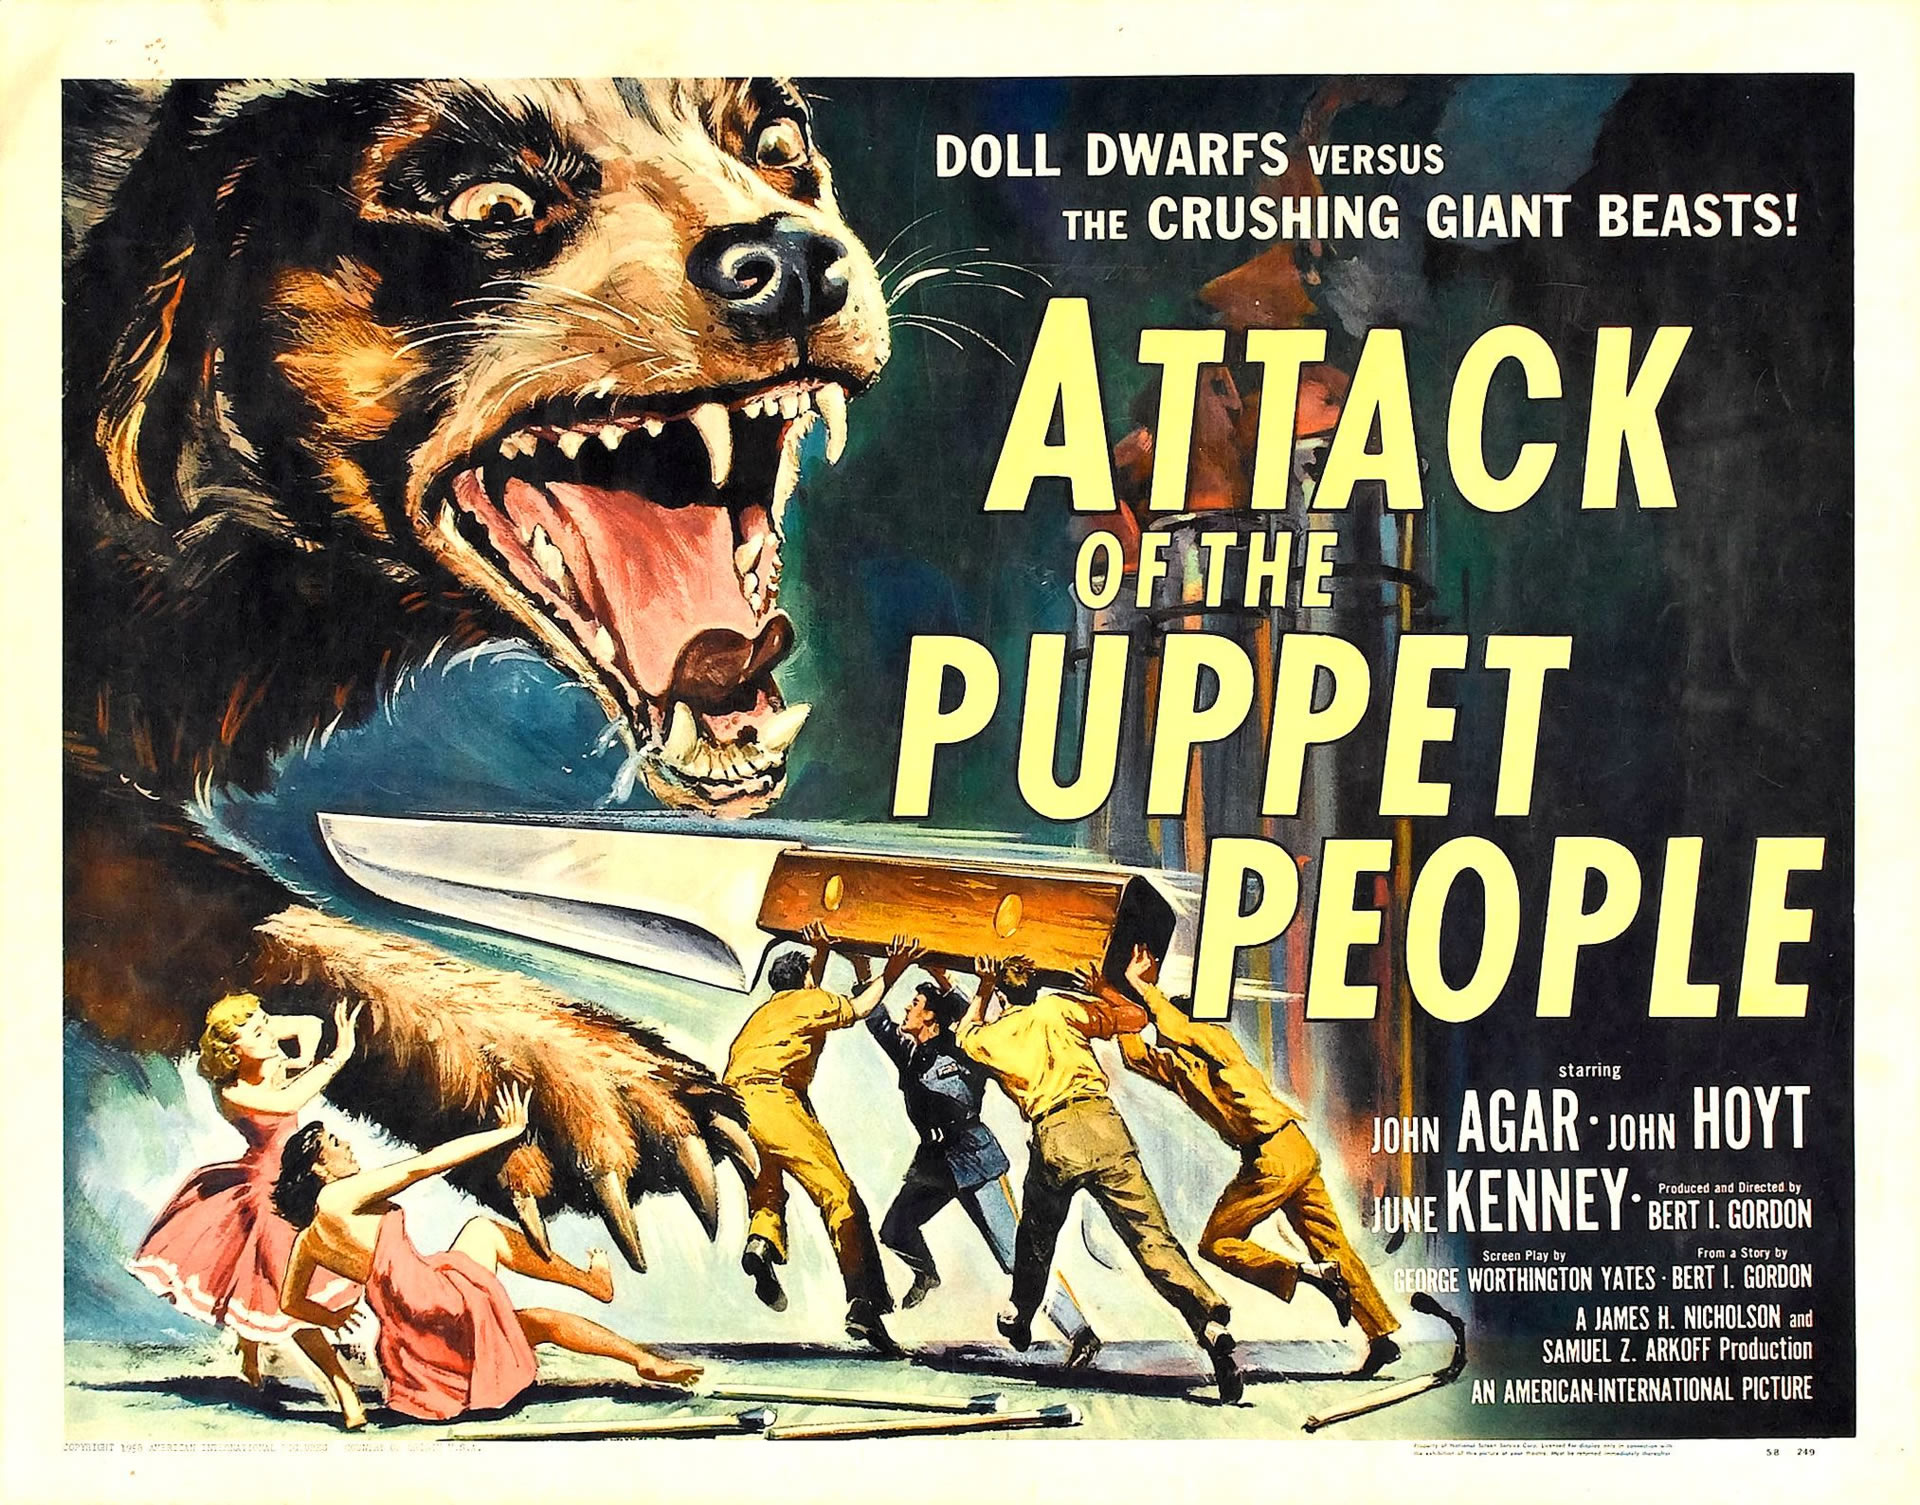 Vintage Movie posters from the 1950s at Original Film Art